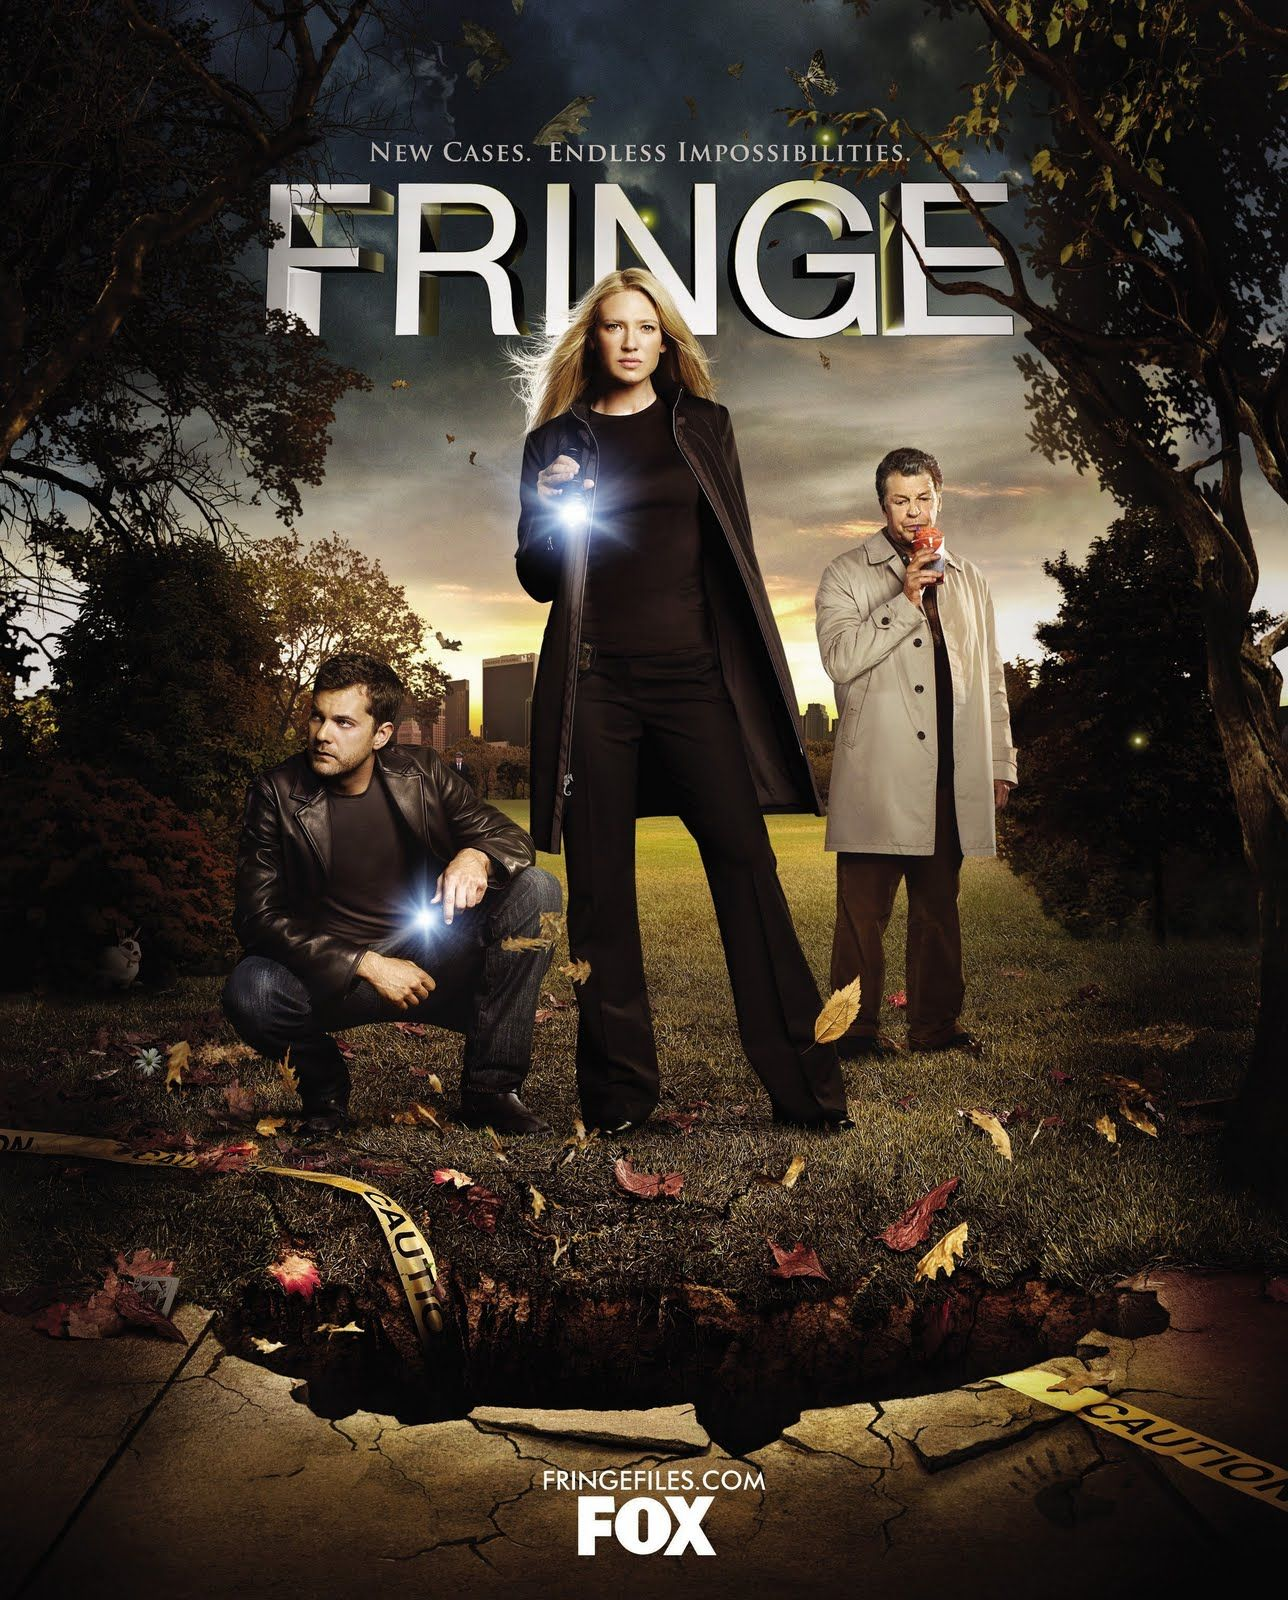 Kevin Reilly Talks Fringe Season 5 Terra Nova Season 2 The Glee